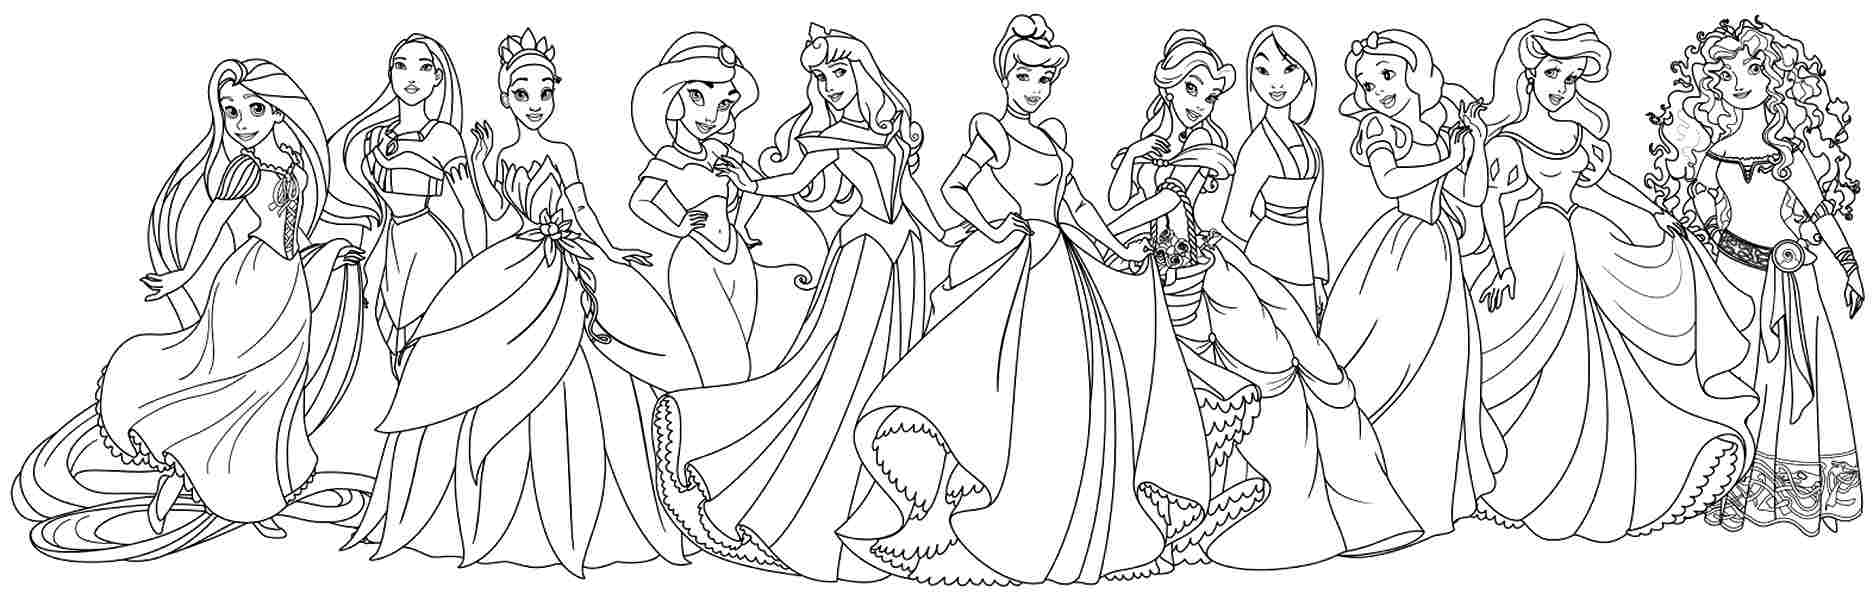 Coloring Pages For Girls 13 And Up